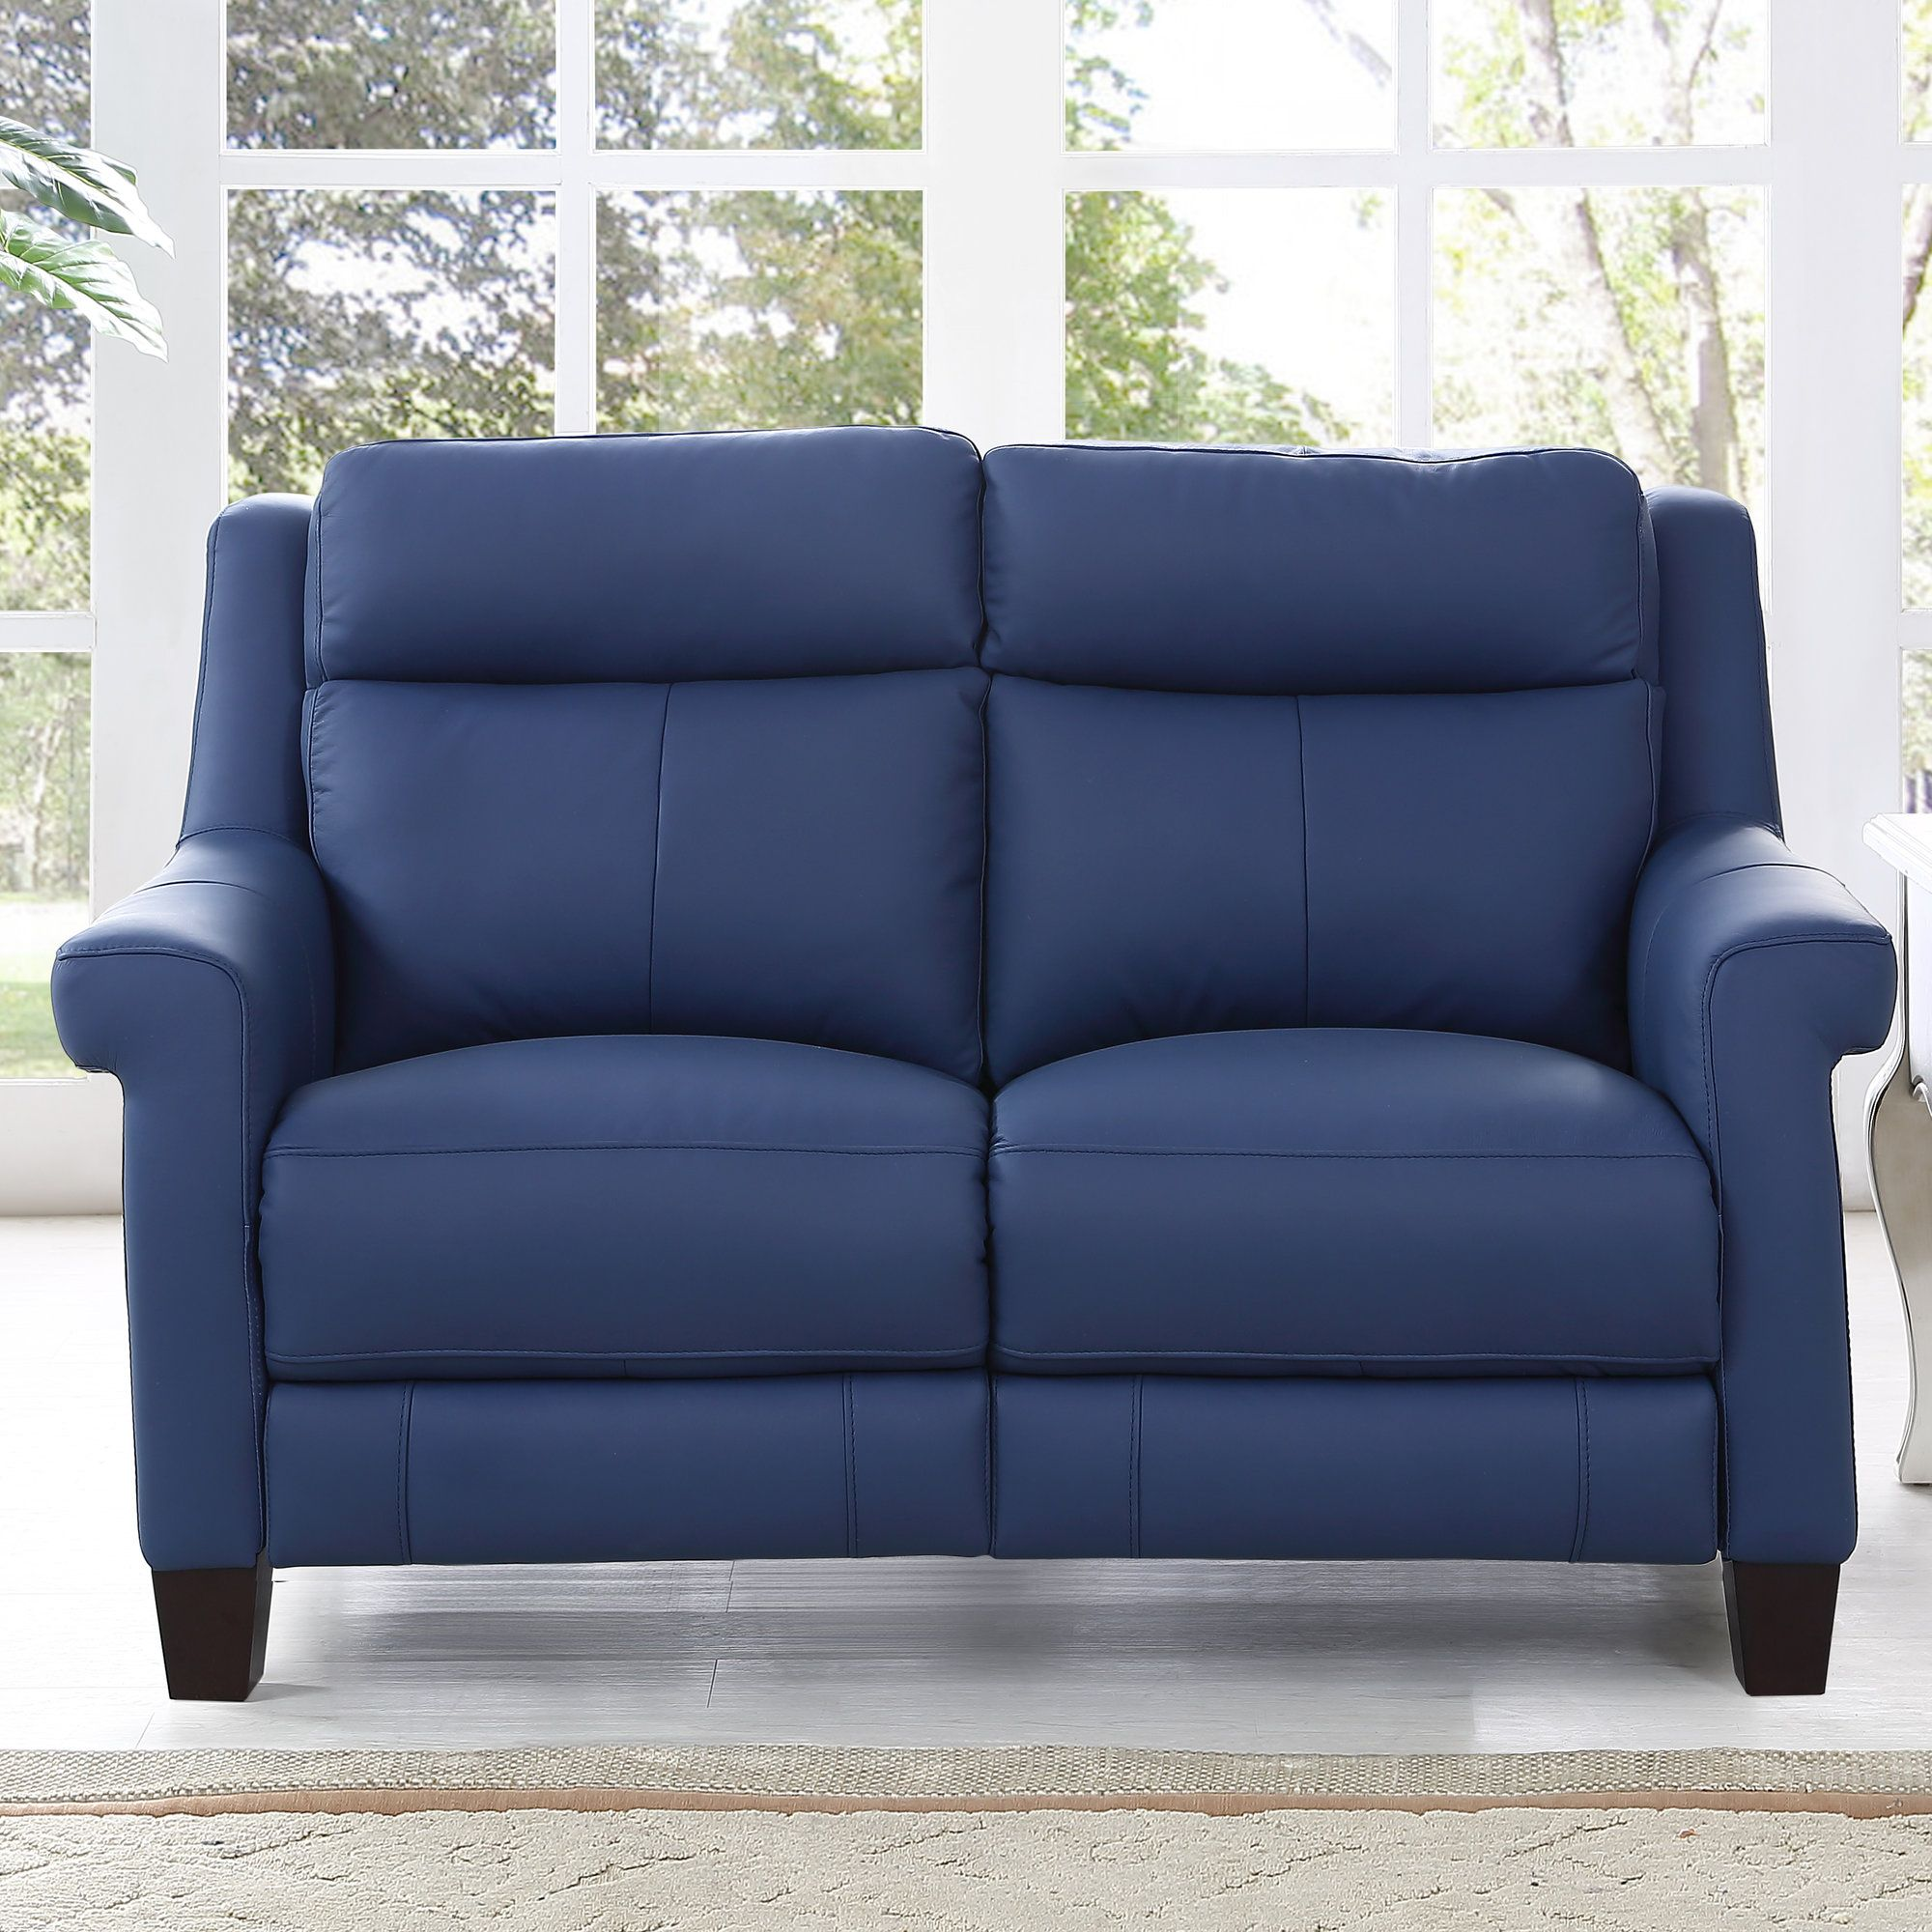 Dolce leather reclining loveseat